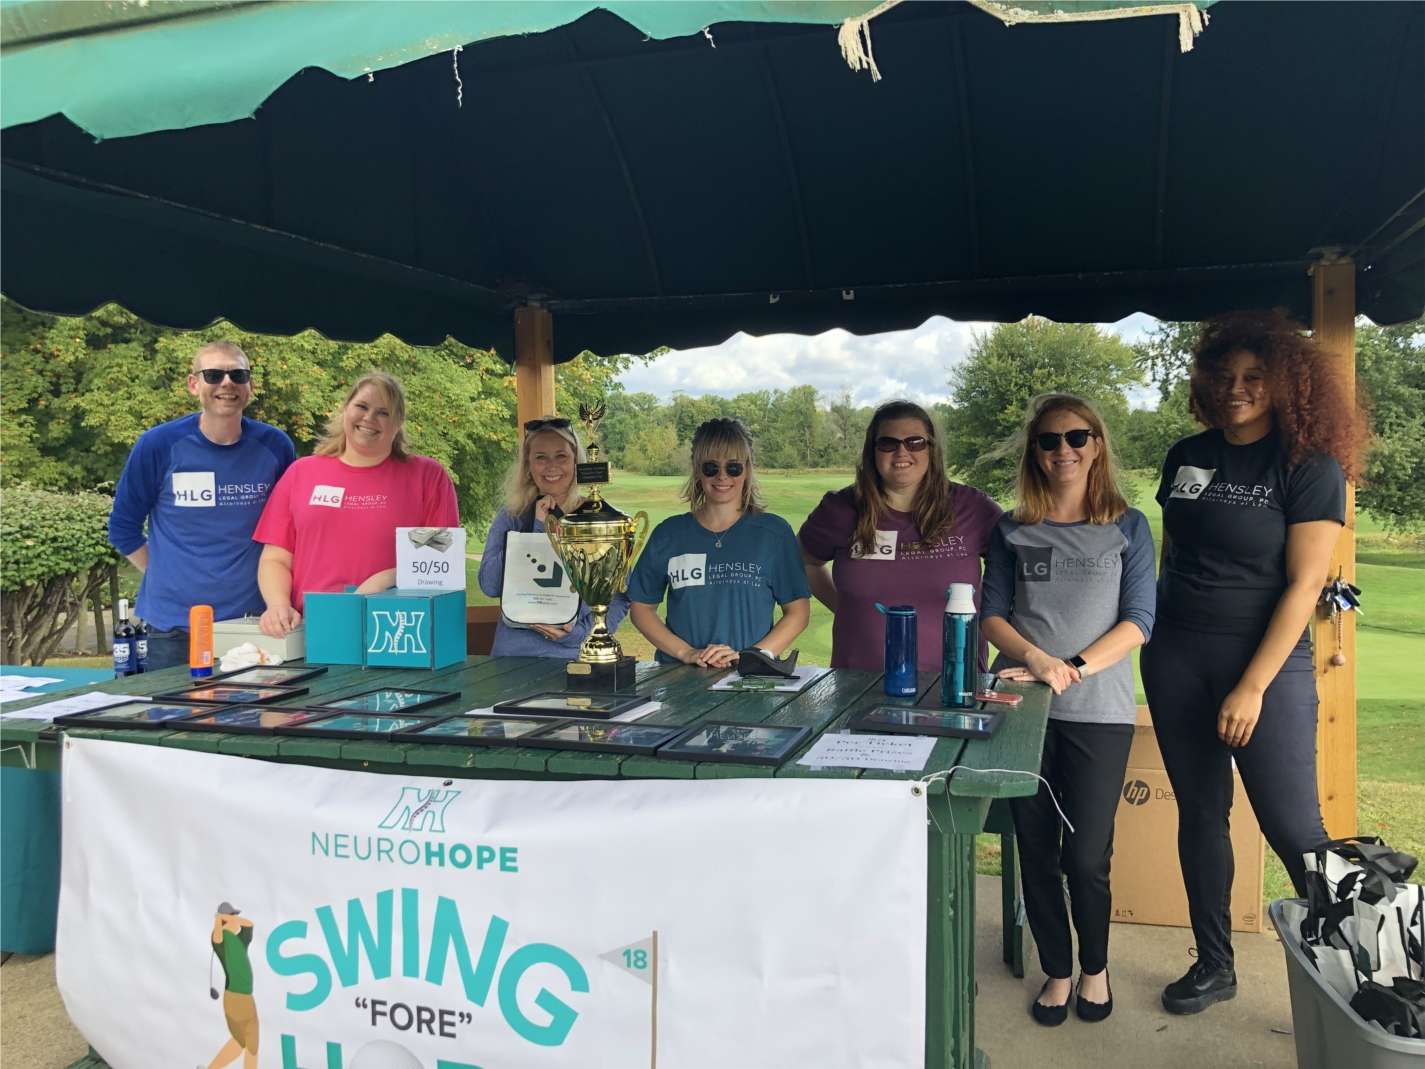 Annual golf outing to benefit NeuroHope, a local organization that provides rehab for spinal cord injury patients.